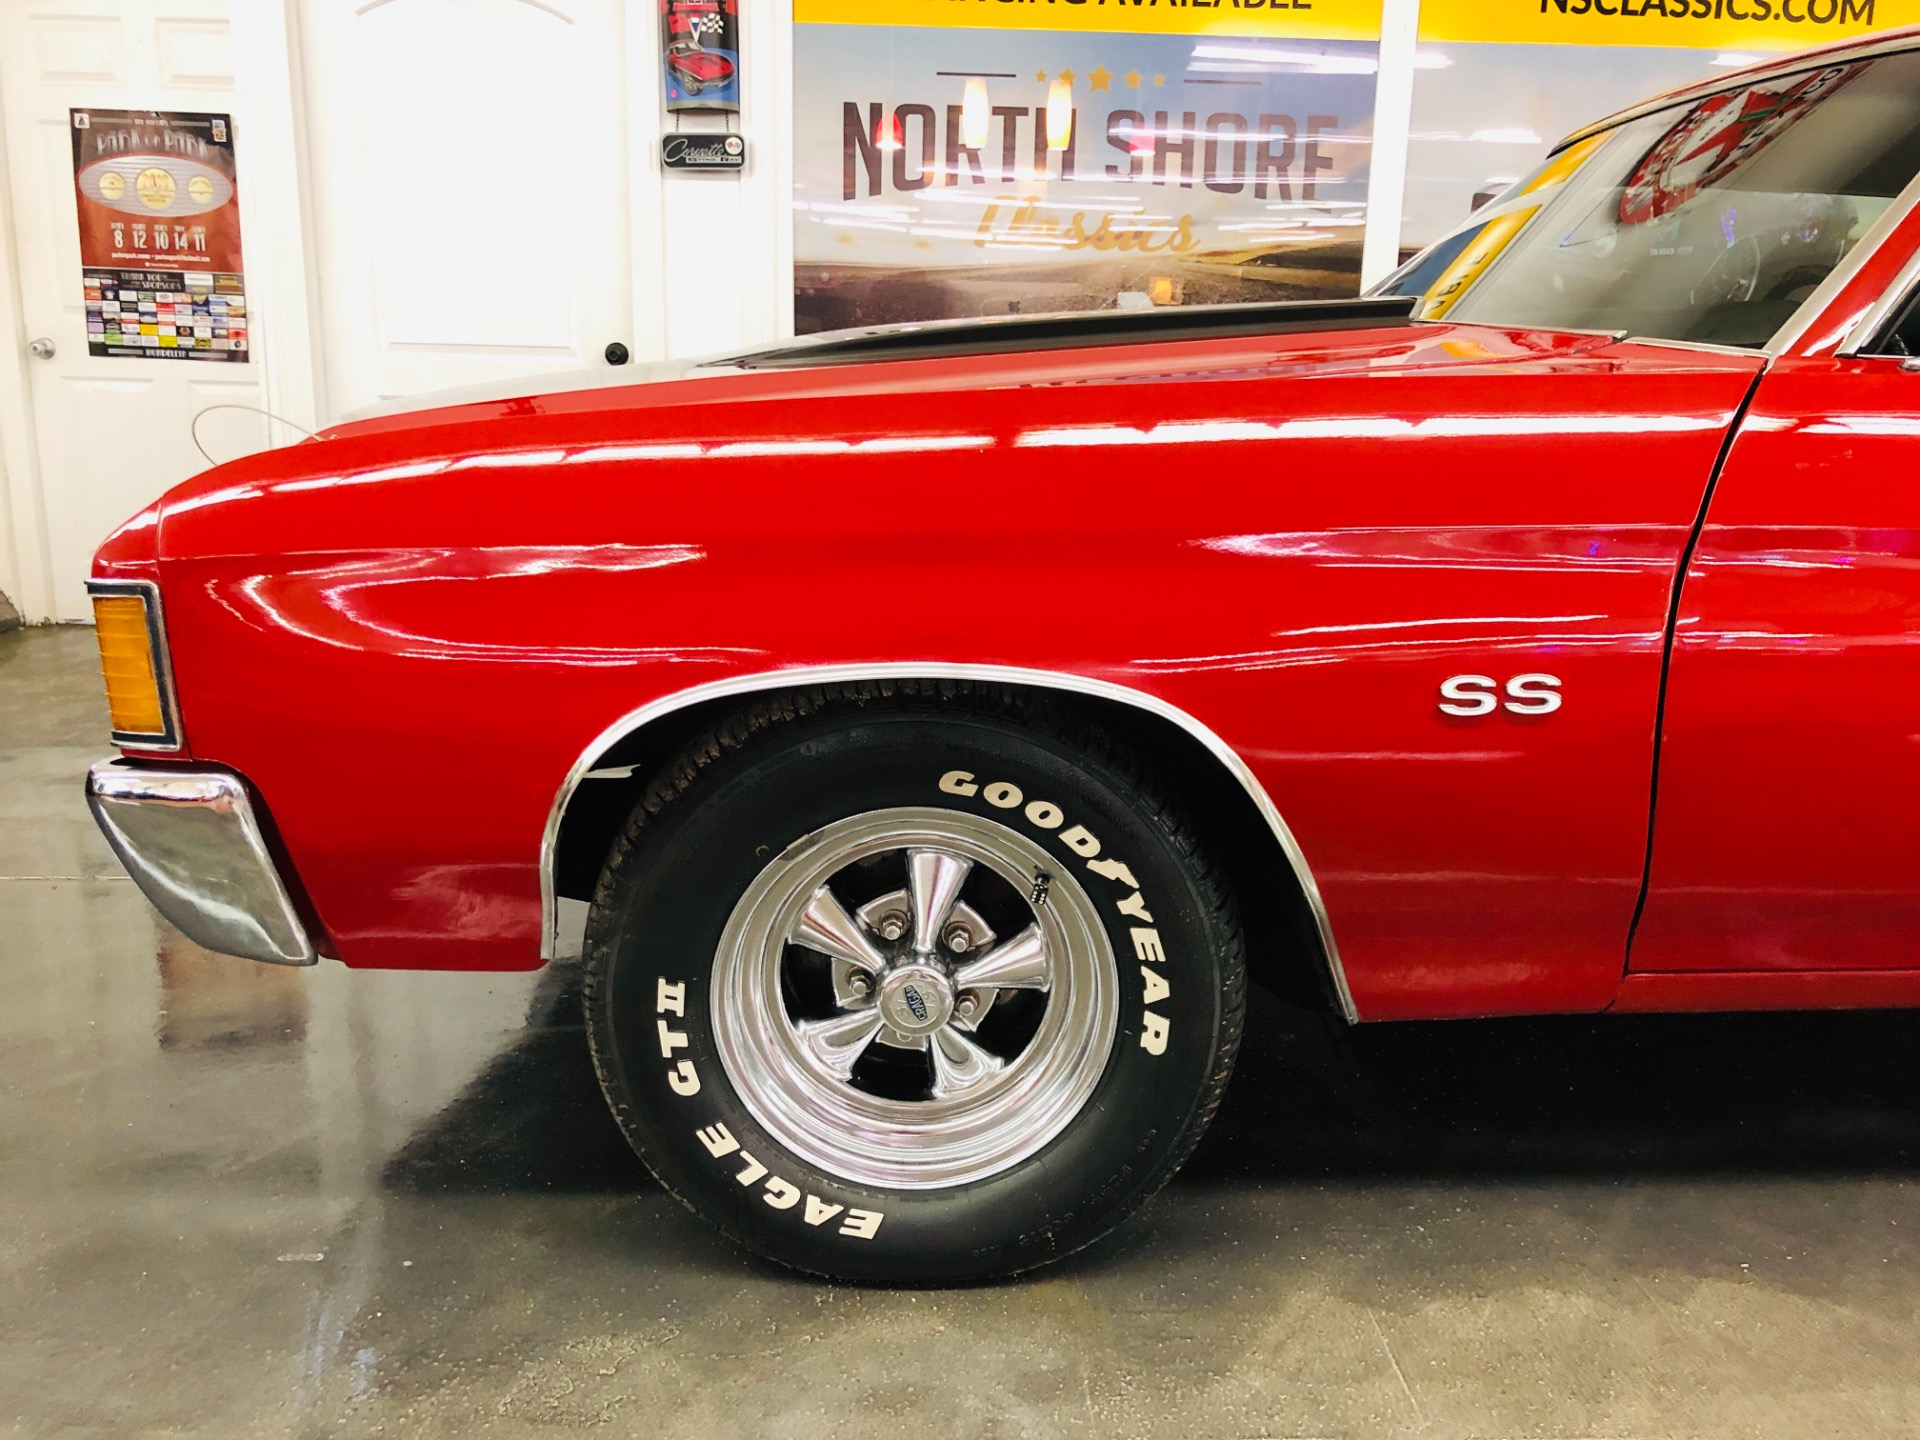 Used 1971 Chevrolet Chevelle -BIG BLOCK ORIGINAL BUILD SHEET-4 SPEED-PURE MUSCLE CAR- | Mundelein, IL